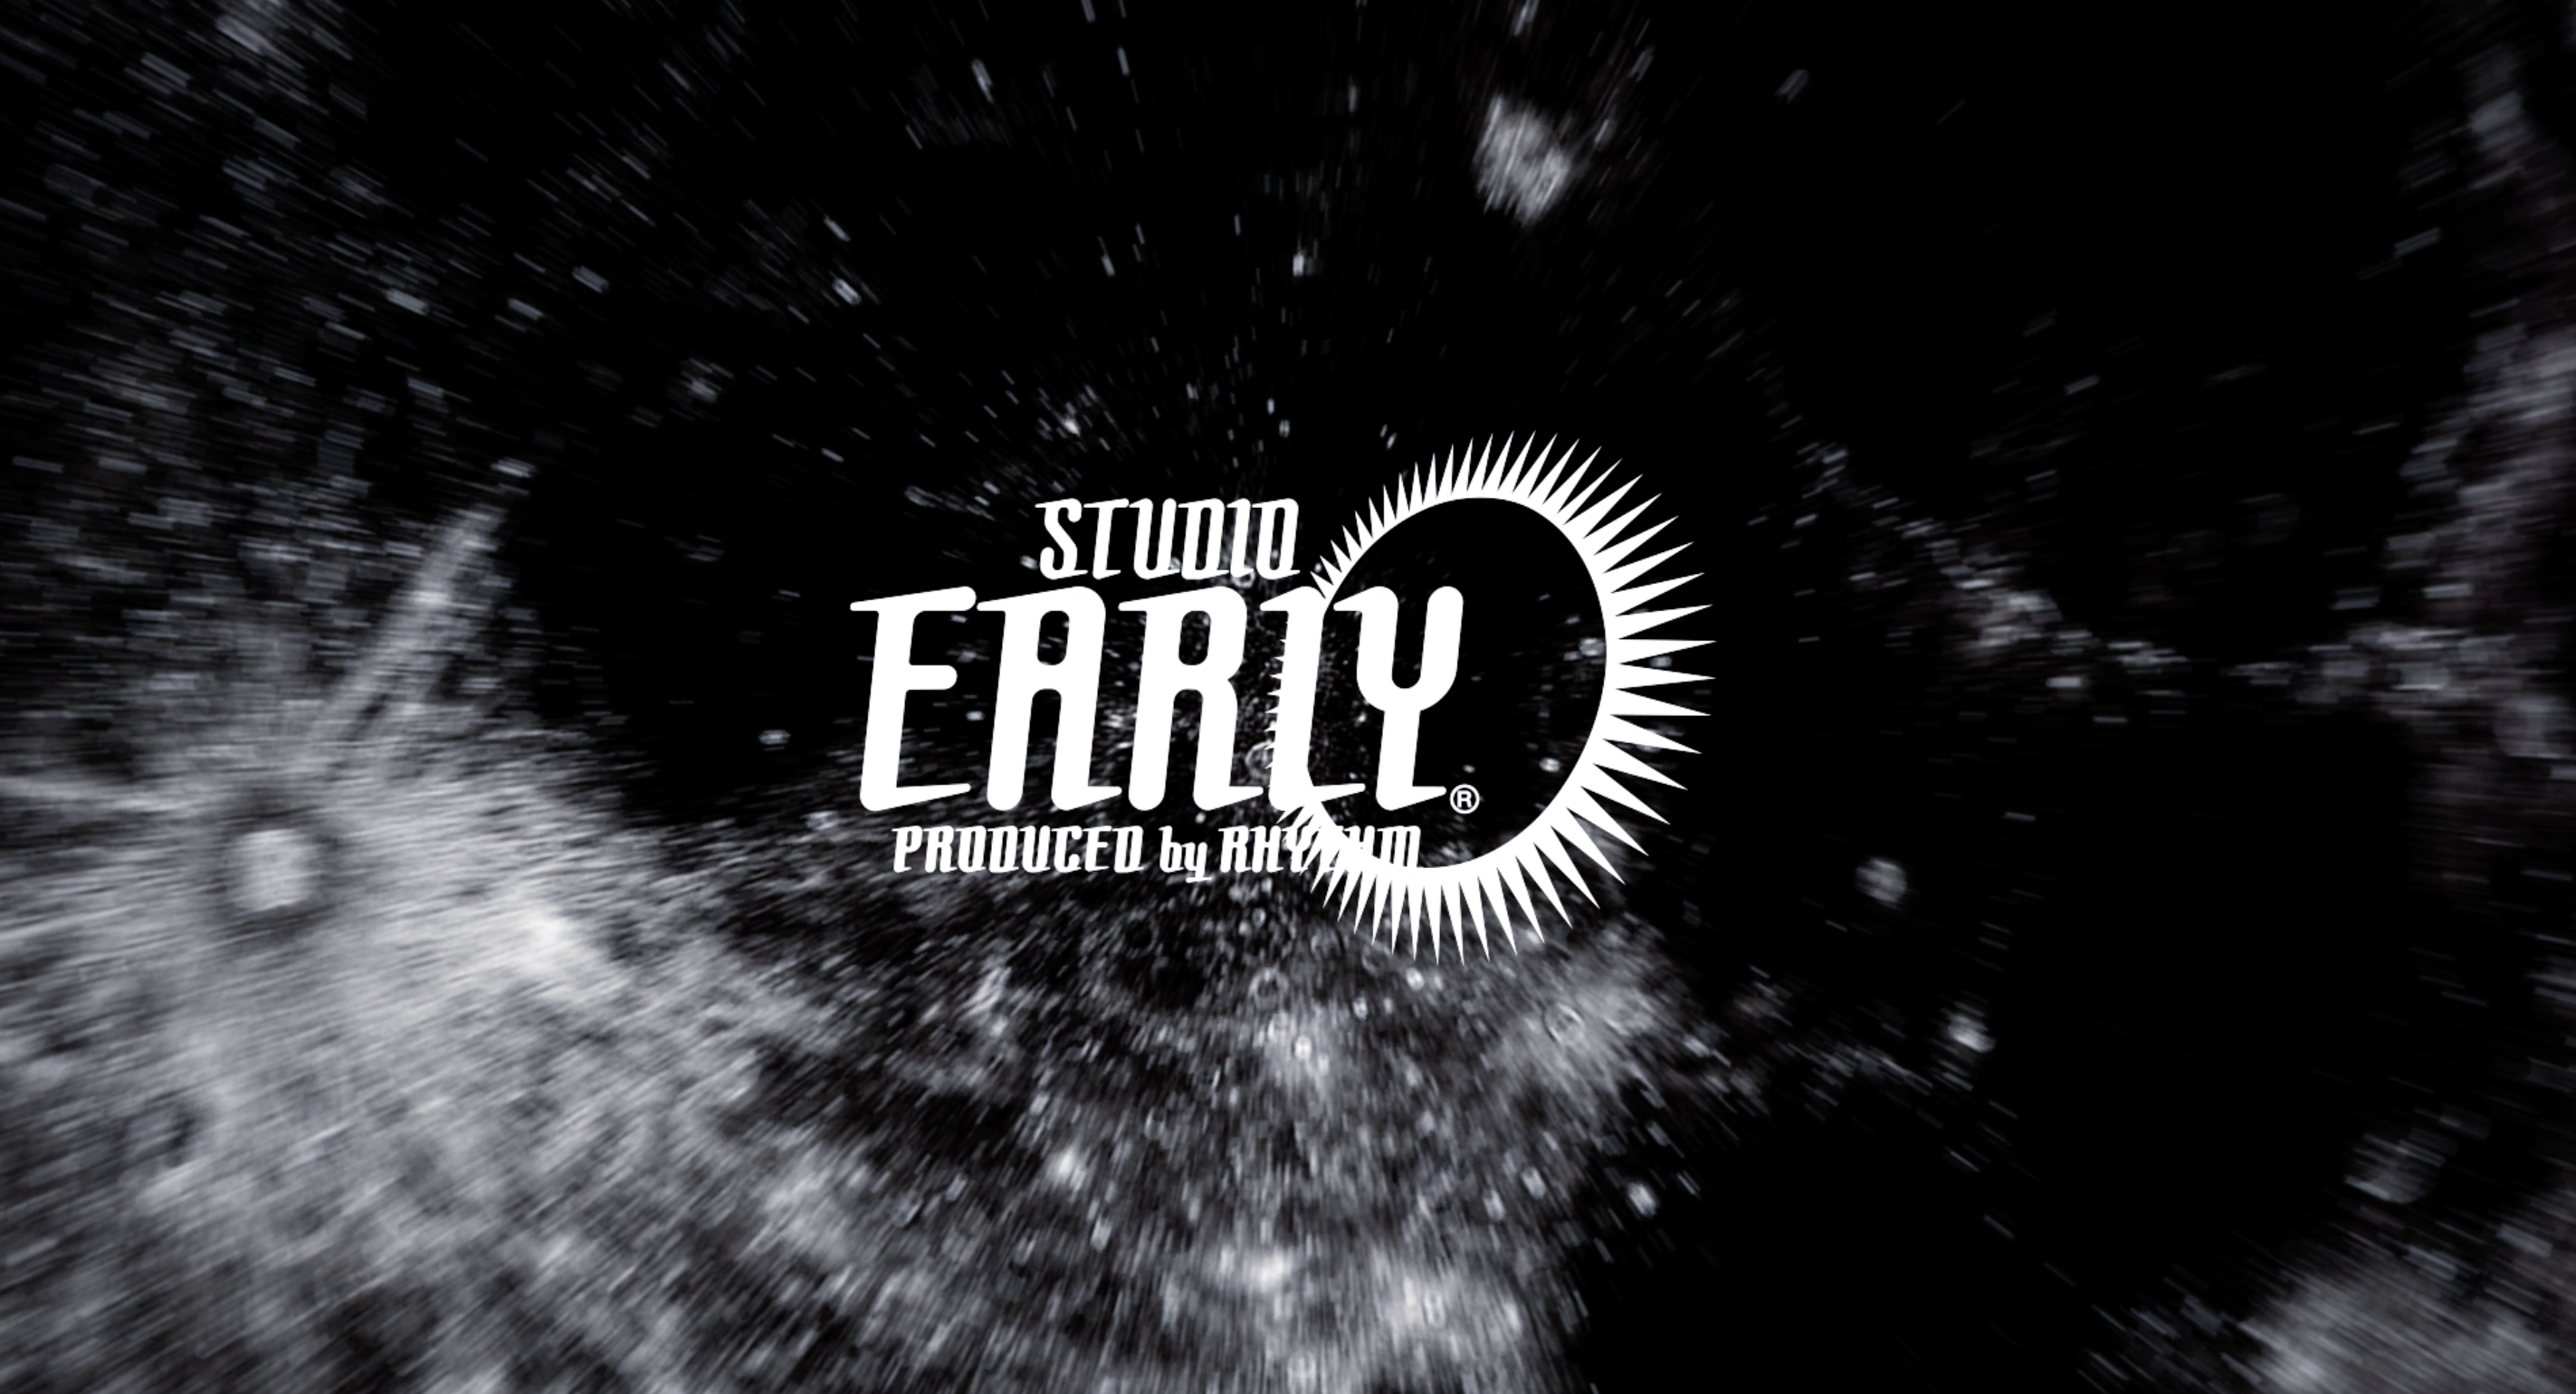 【studioEARLY LIVE配信発表会~IMPACT~2020.8.16】COMING SOON!!!